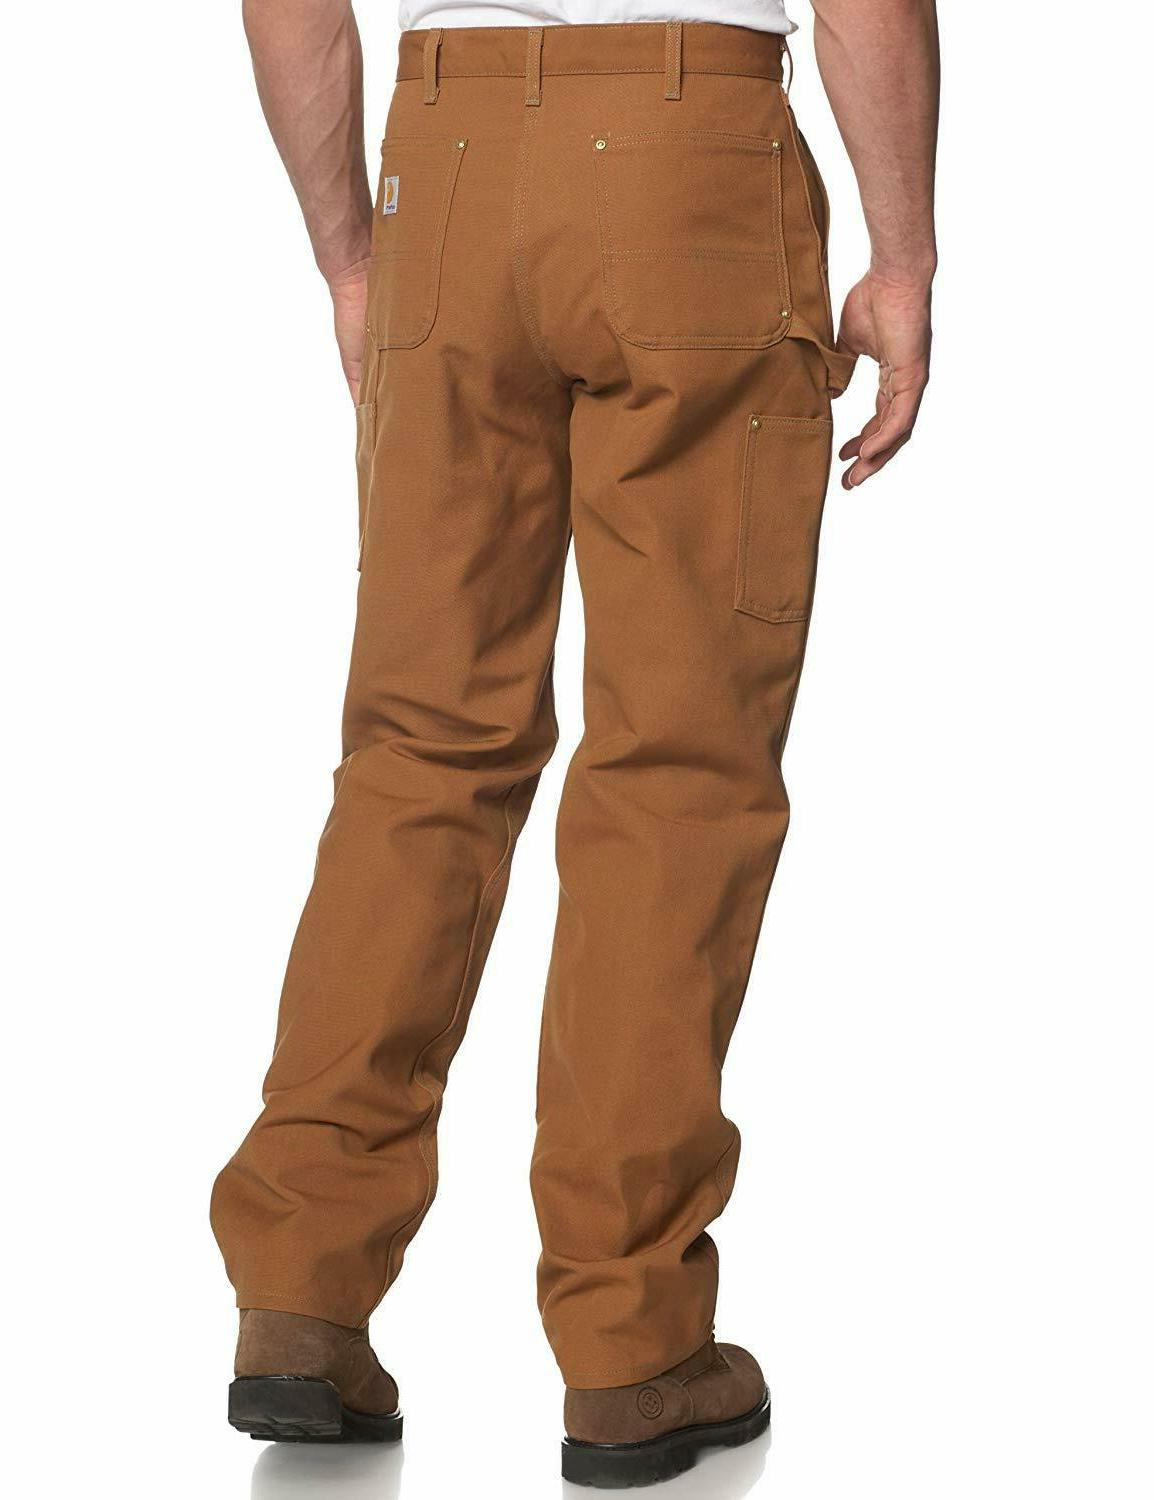 Double-Front Dungaree Pant B01, U.S.A.